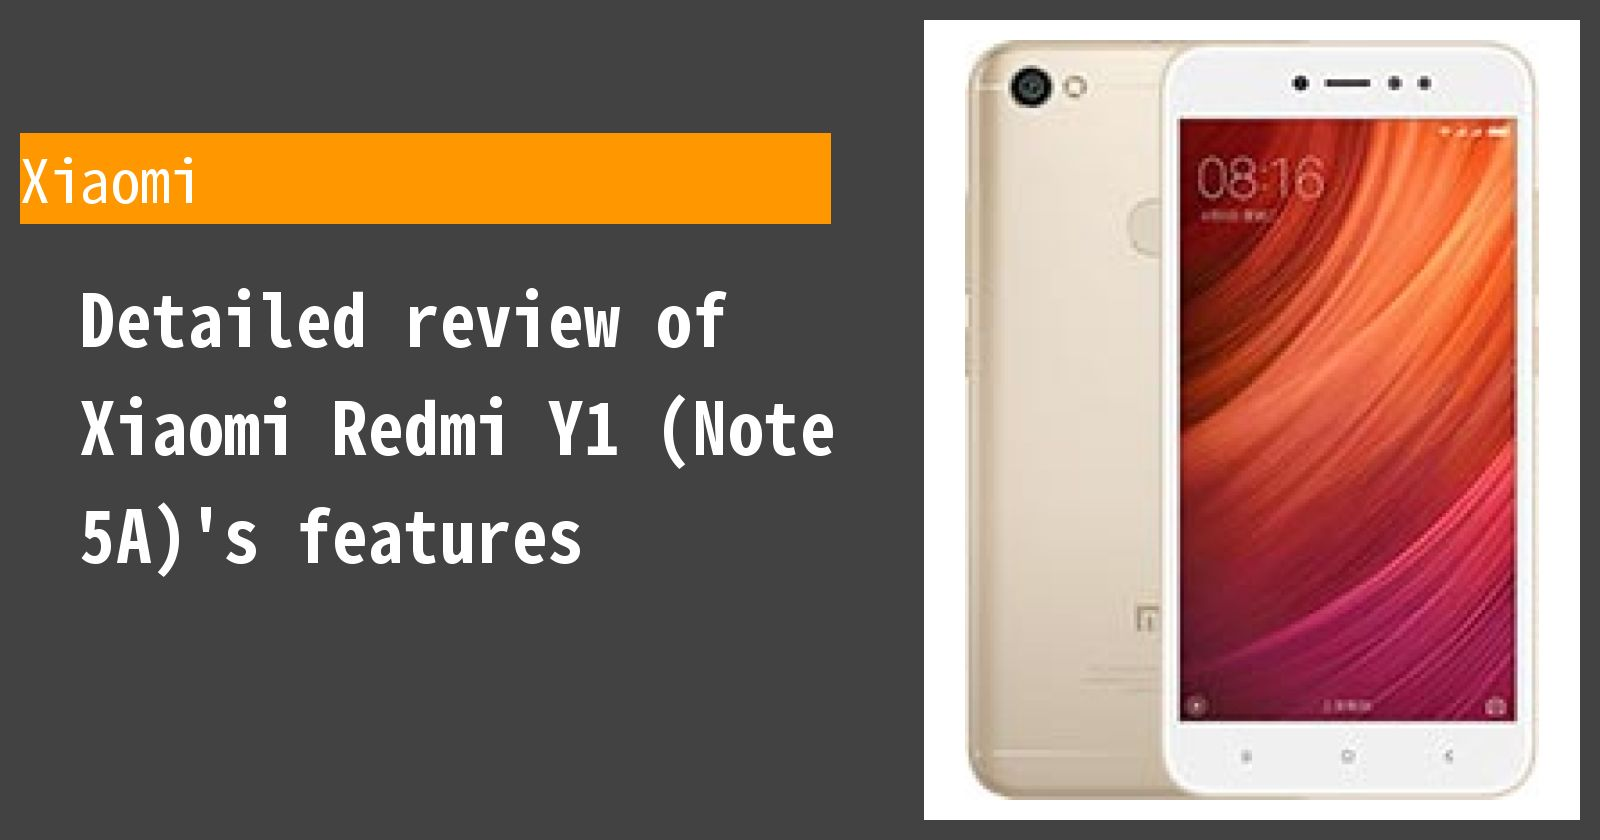 Detailed review of Xiaomi Redmi Y1 (Note 5A)'s features